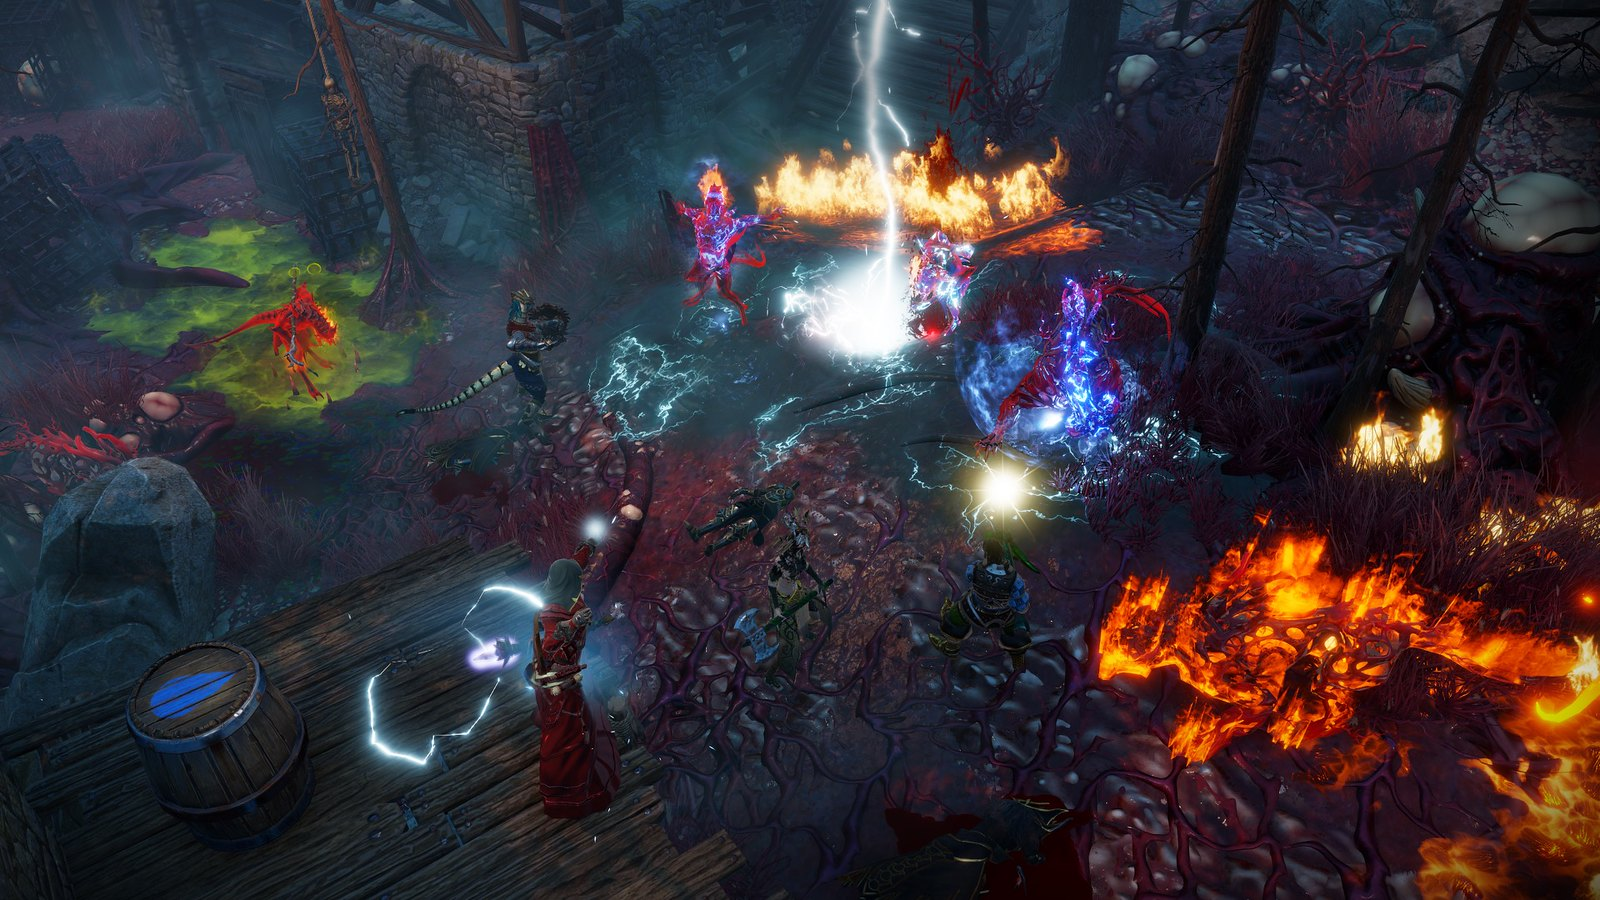 Pre Order Critically Acclaimed Rpg Divinity Original Sin 2 On Ps4